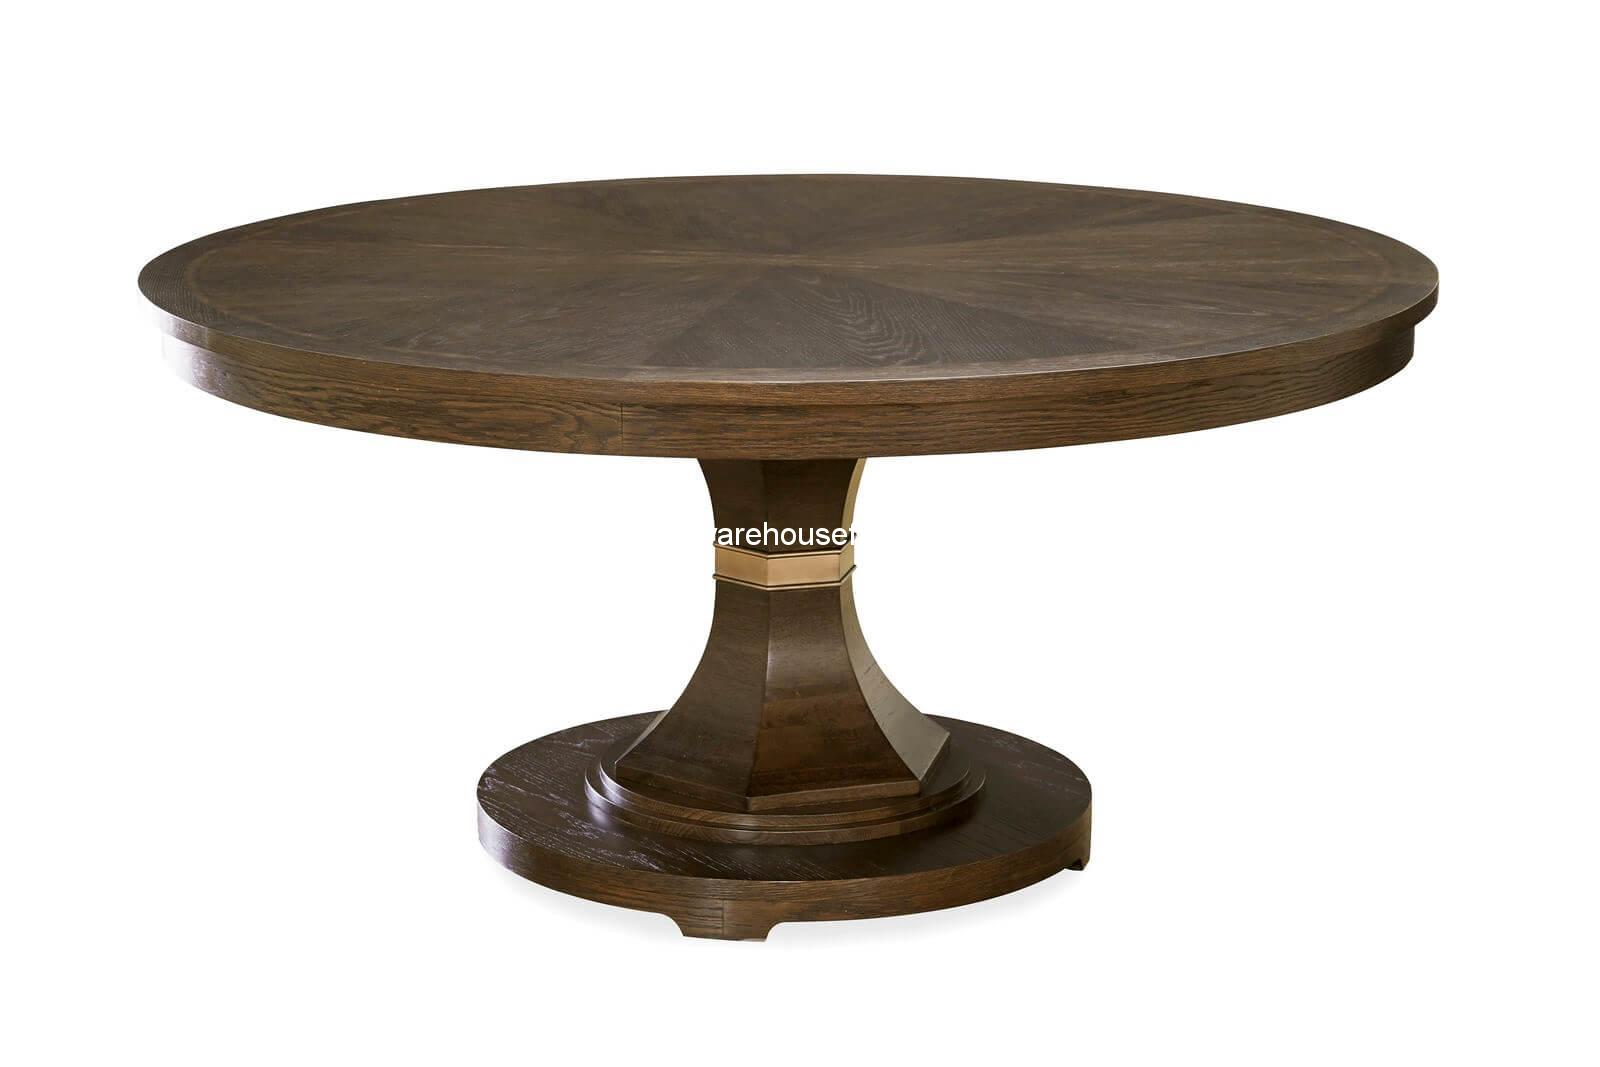 California Round Formal Dining Table Usa Warehouse Furniture